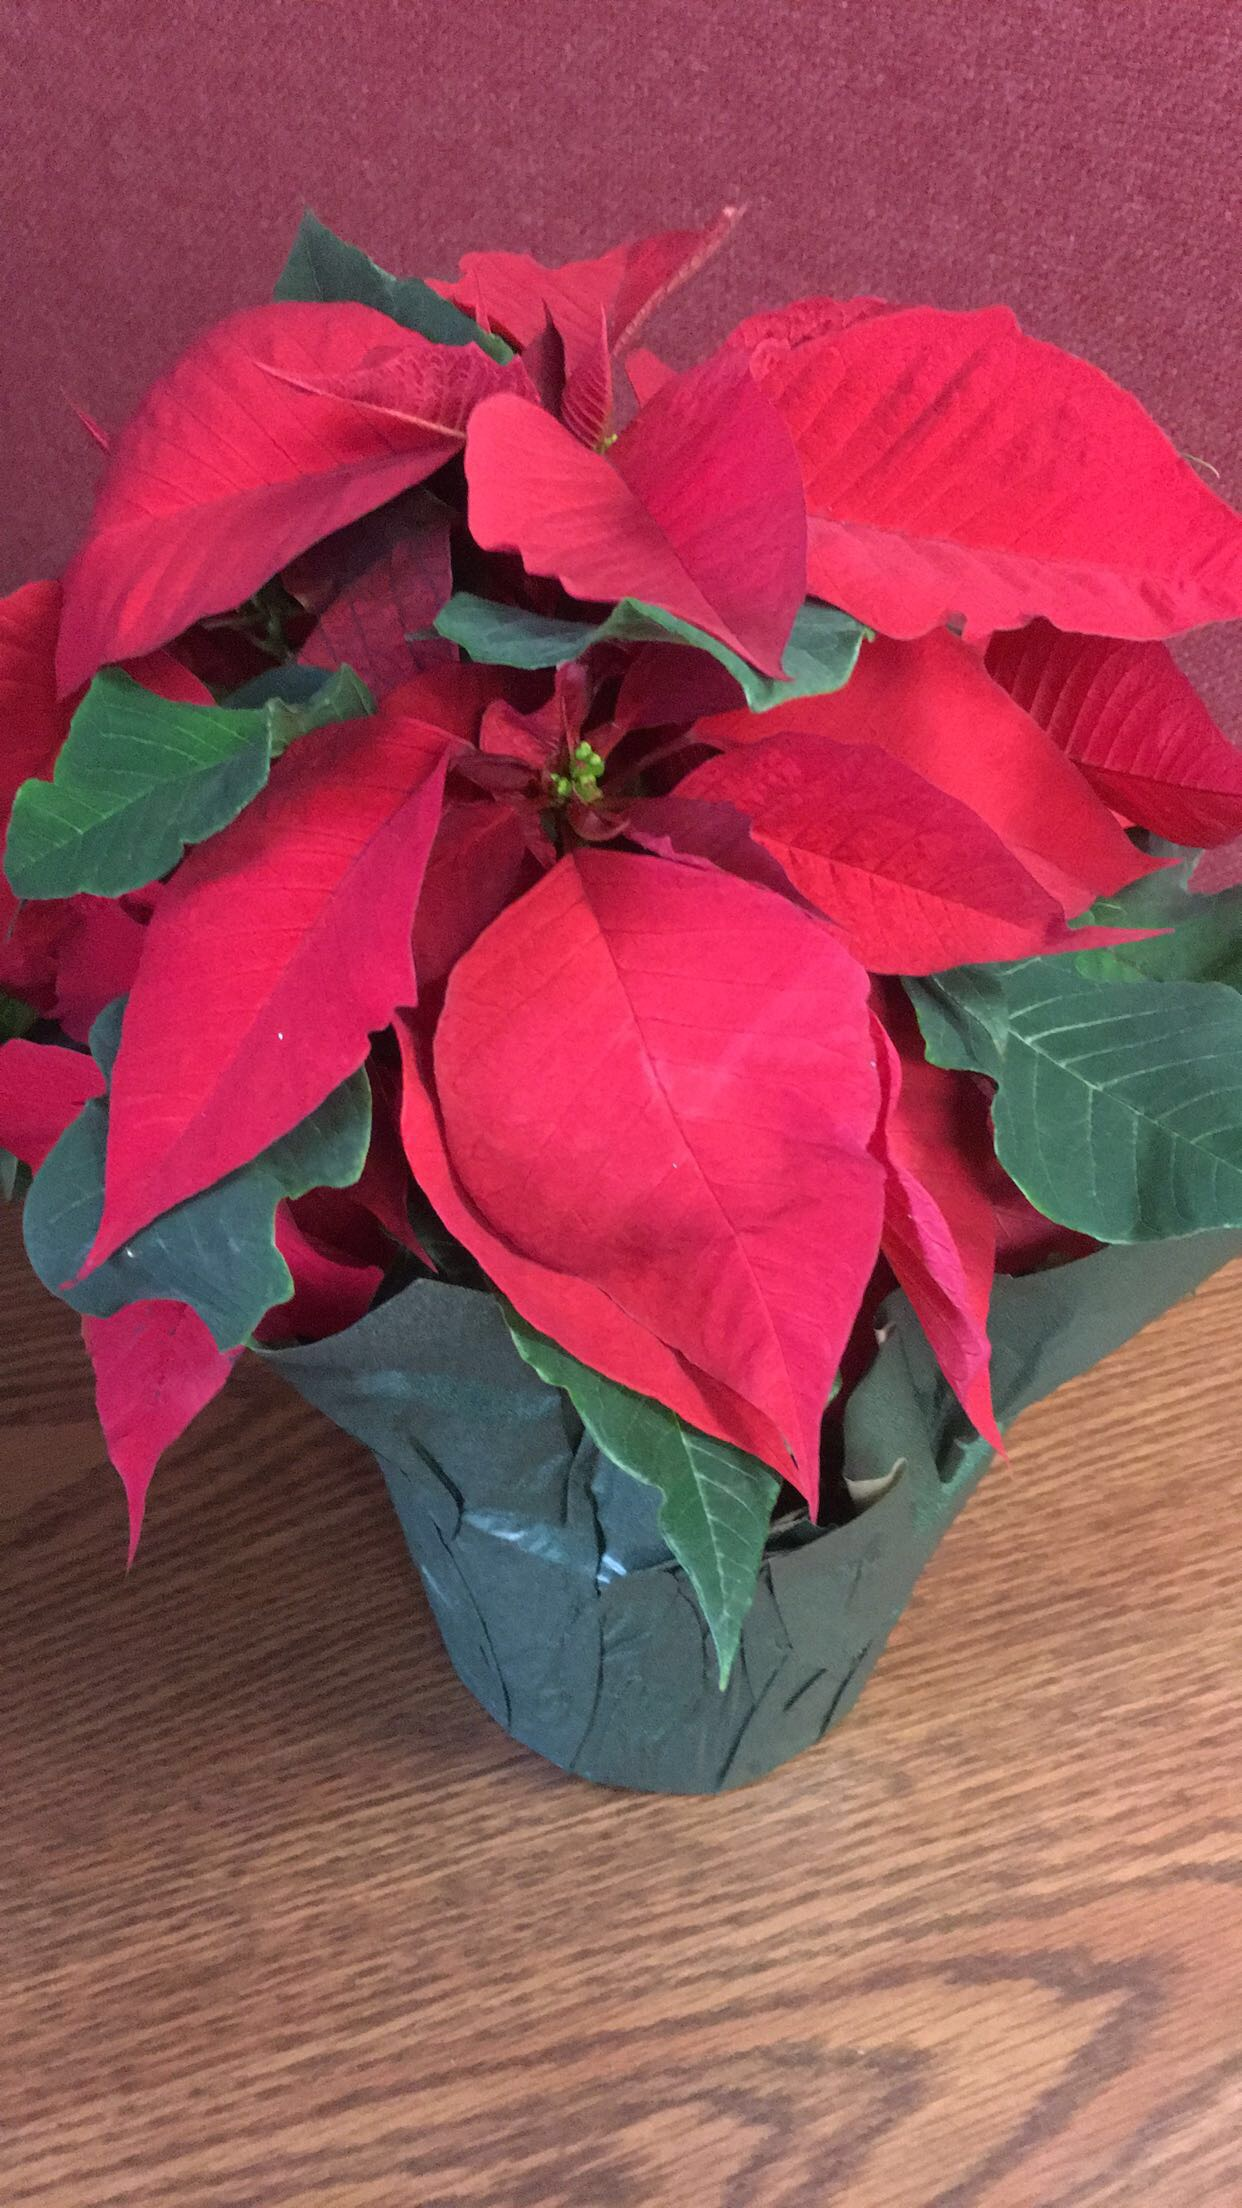 The Career Academy Grows Poinsettias for the Holiday Season